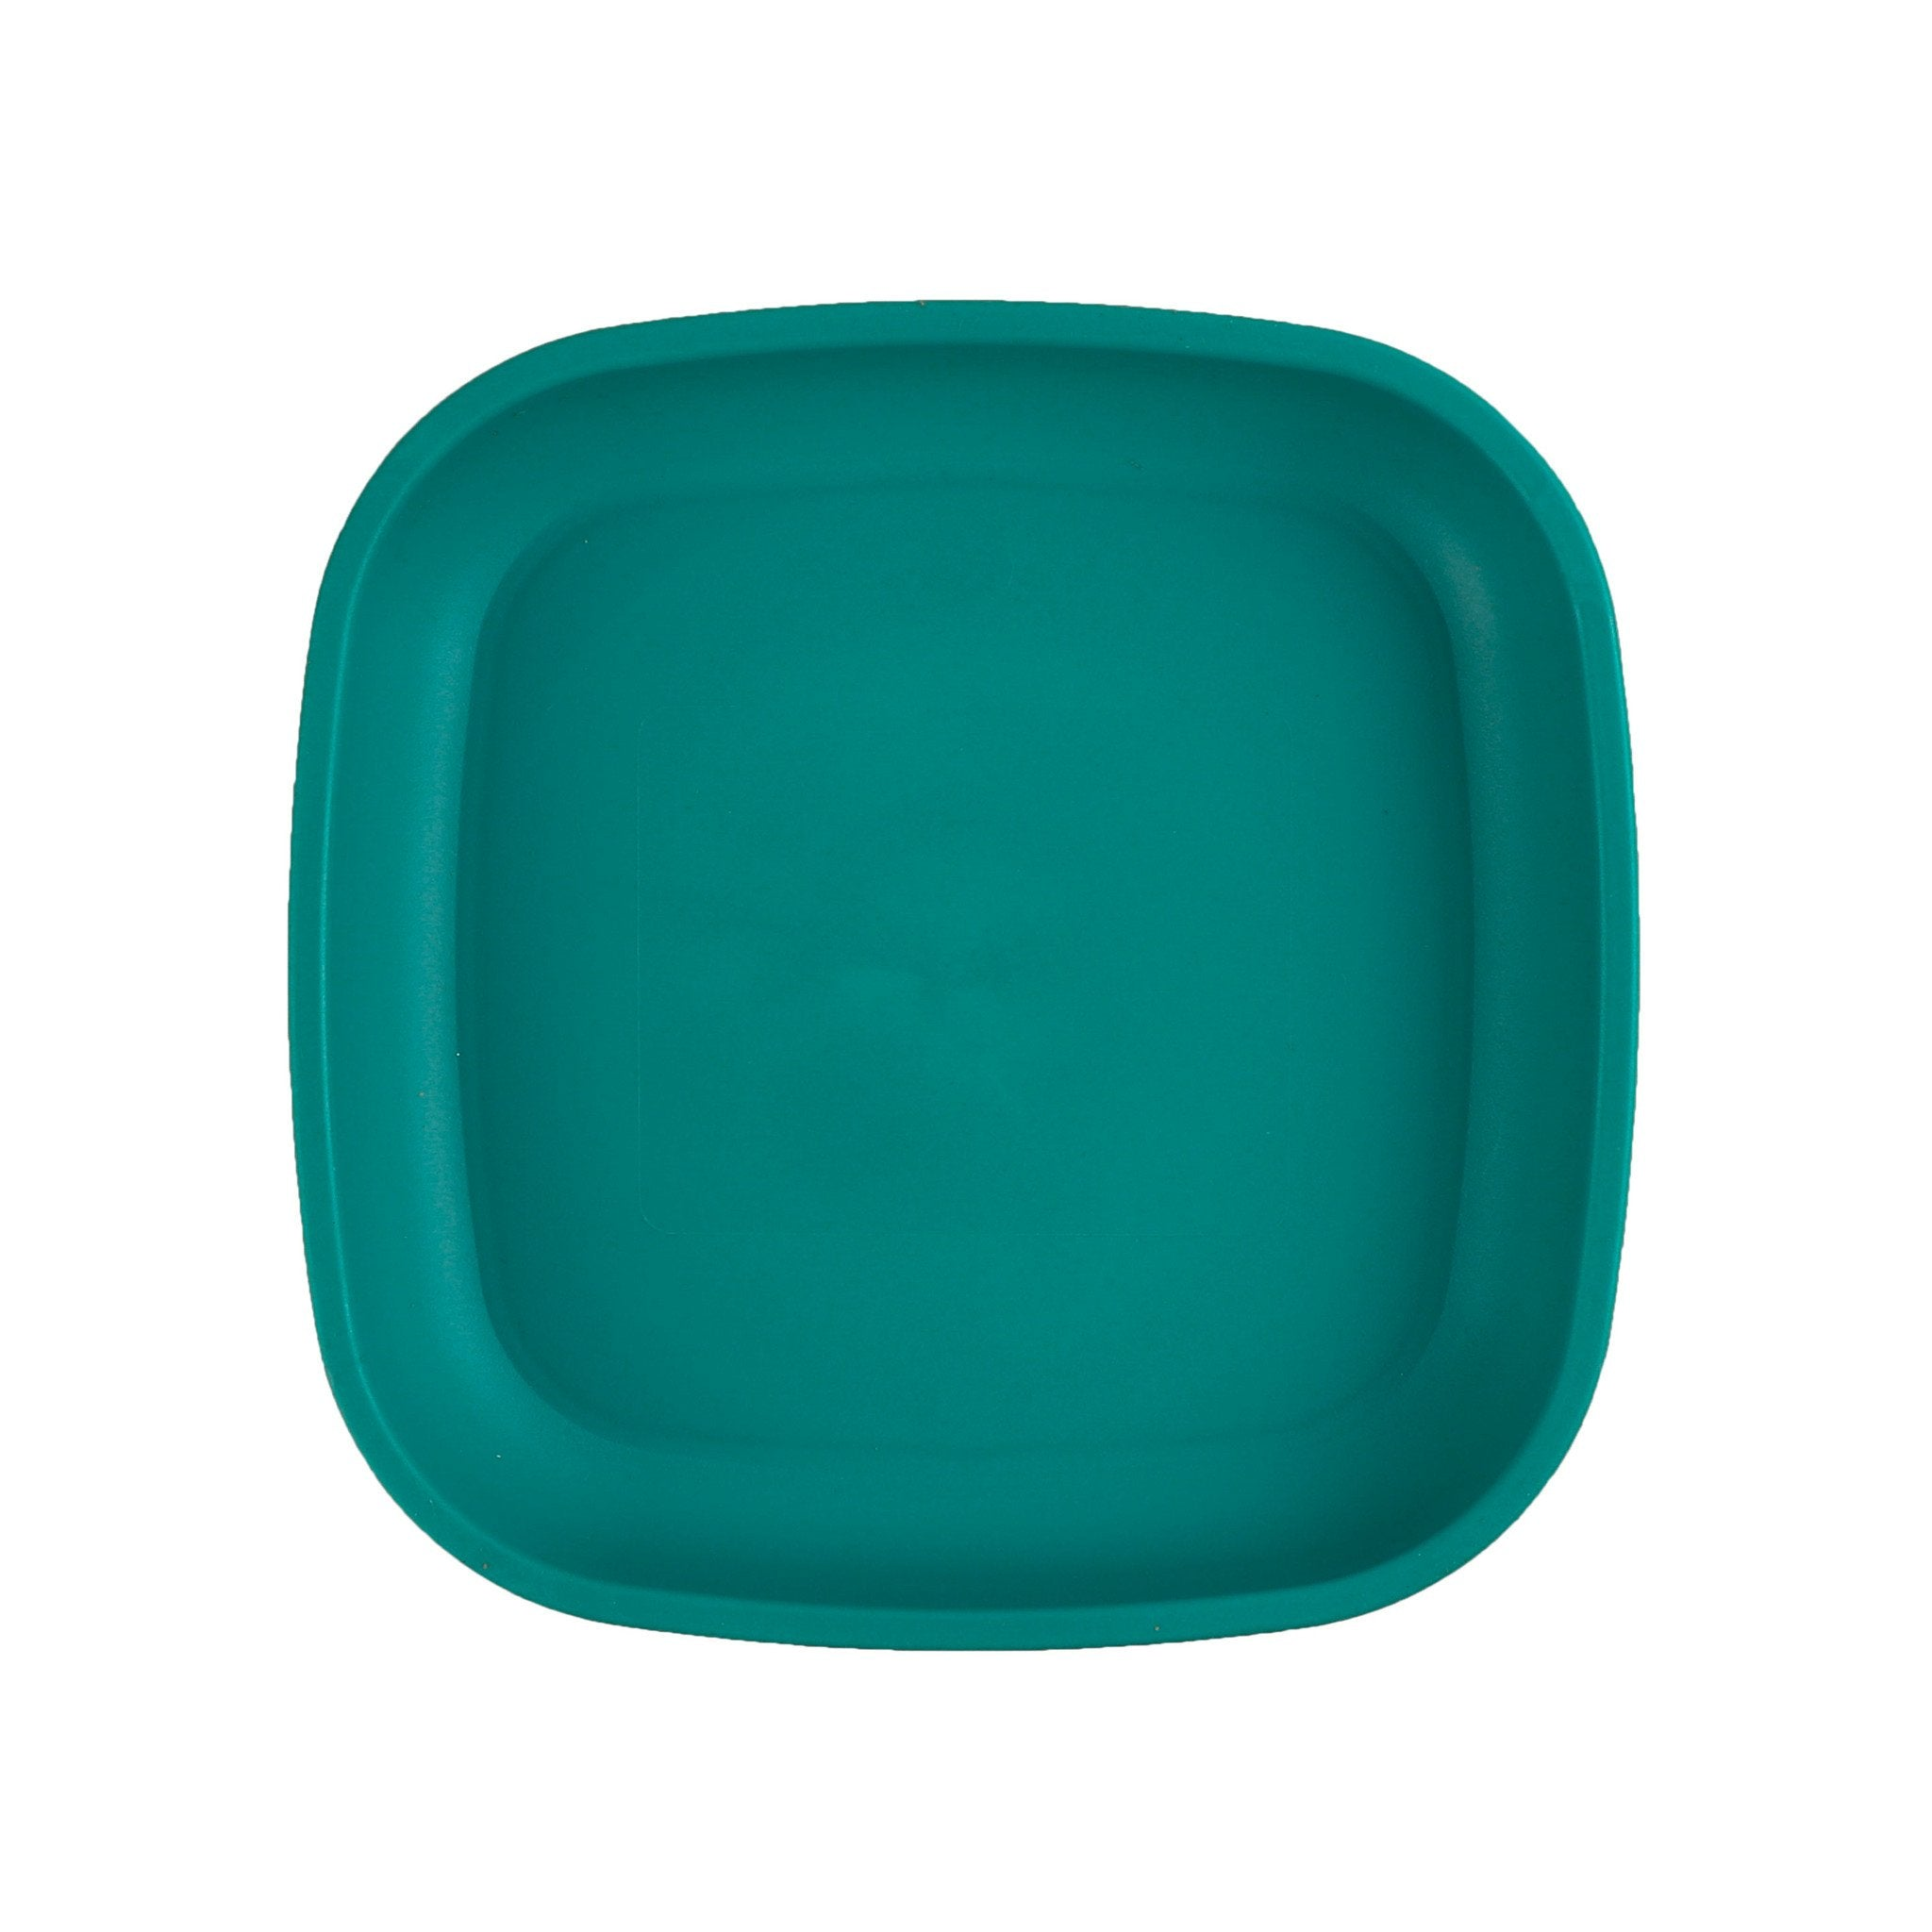 Replay Plate Replay Dinnerware Teal at Little Earth Nest Eco Shop